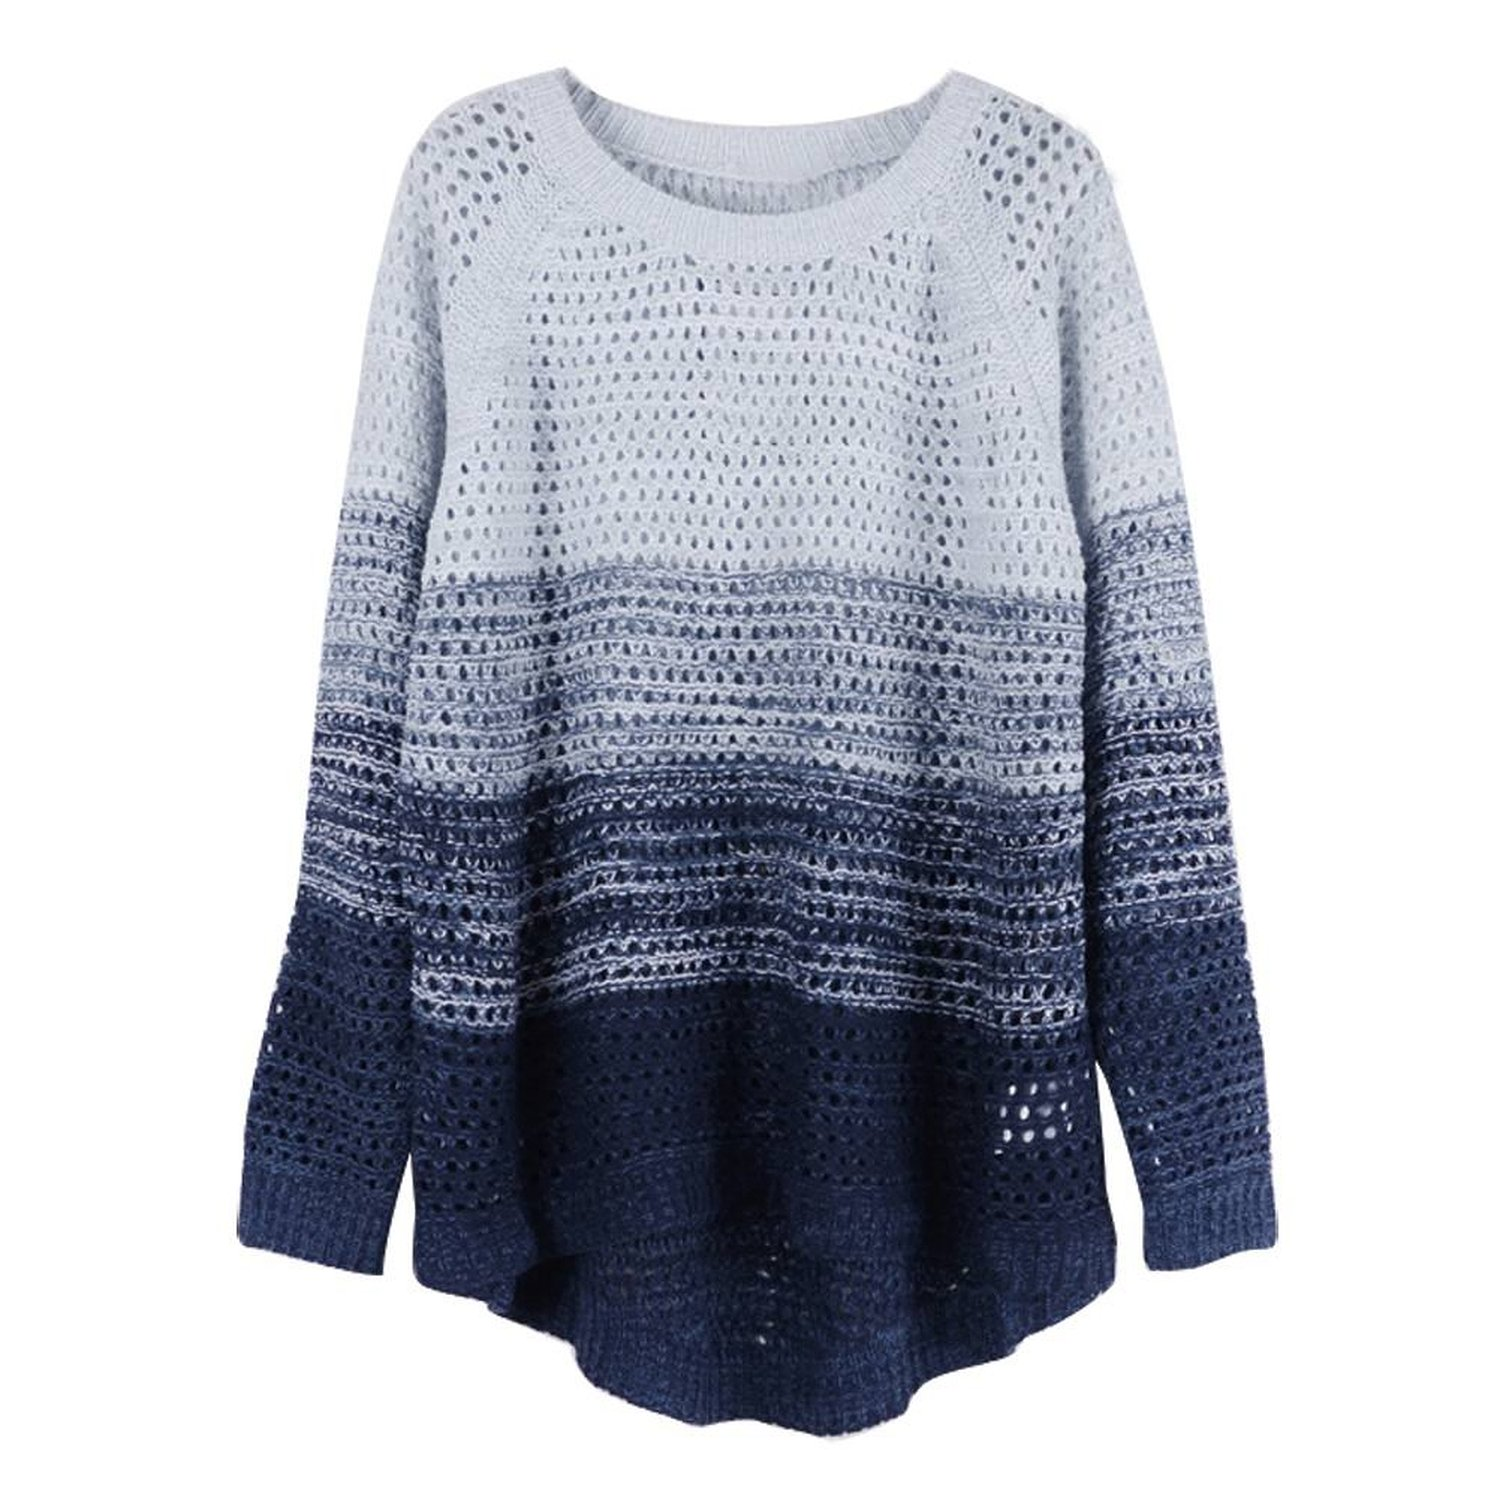 ZLYC Women's Gradient Color Stripe Loose Pullover Knit Sweater (Blue) at Amazon Women's Clothing store: